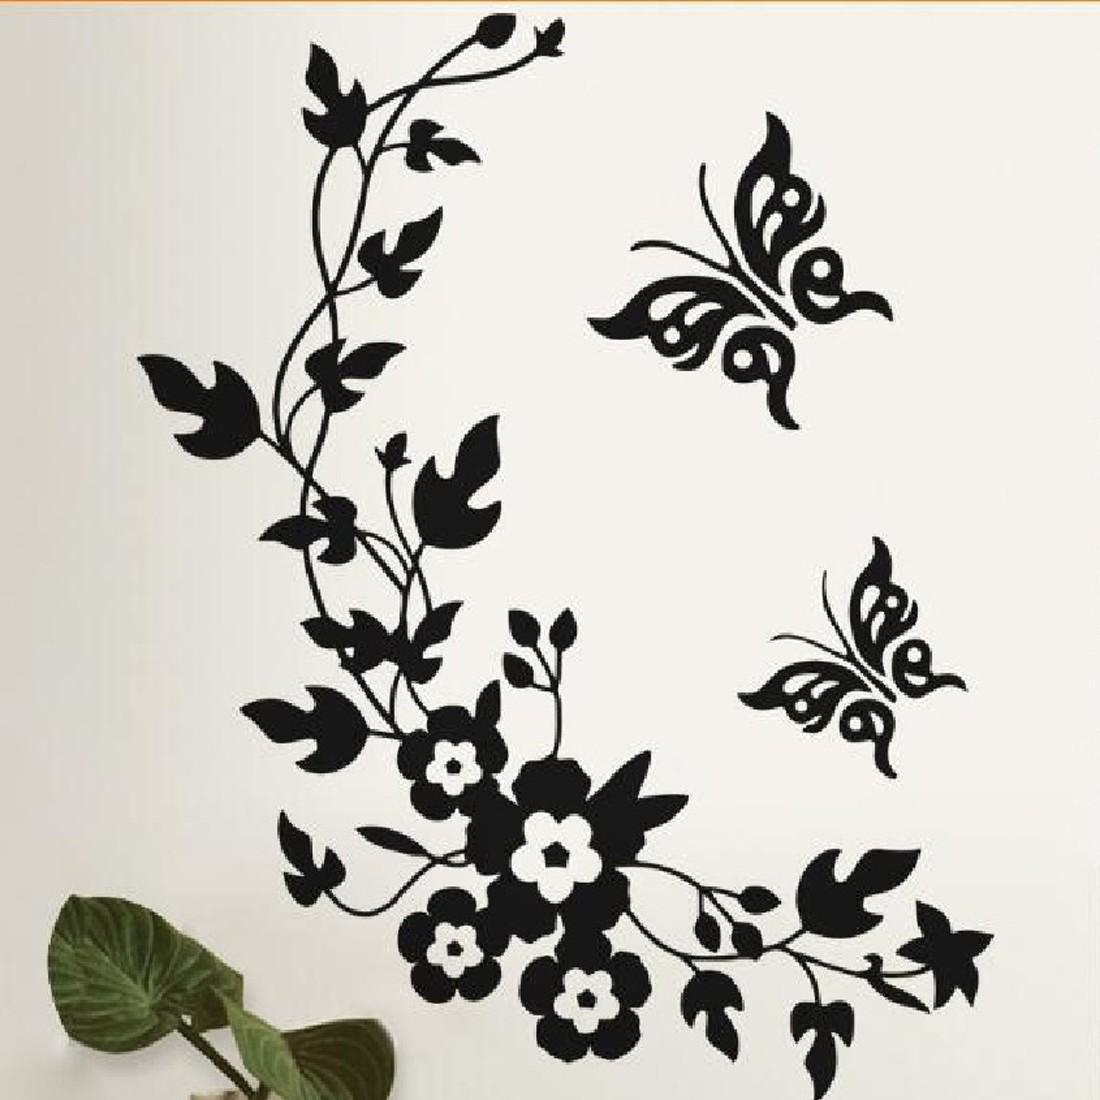 Hot Sale Removable DIY Mural Wallpaper Black Butterfly Flower Wall Stickers Decal Home Decoration New Fashion